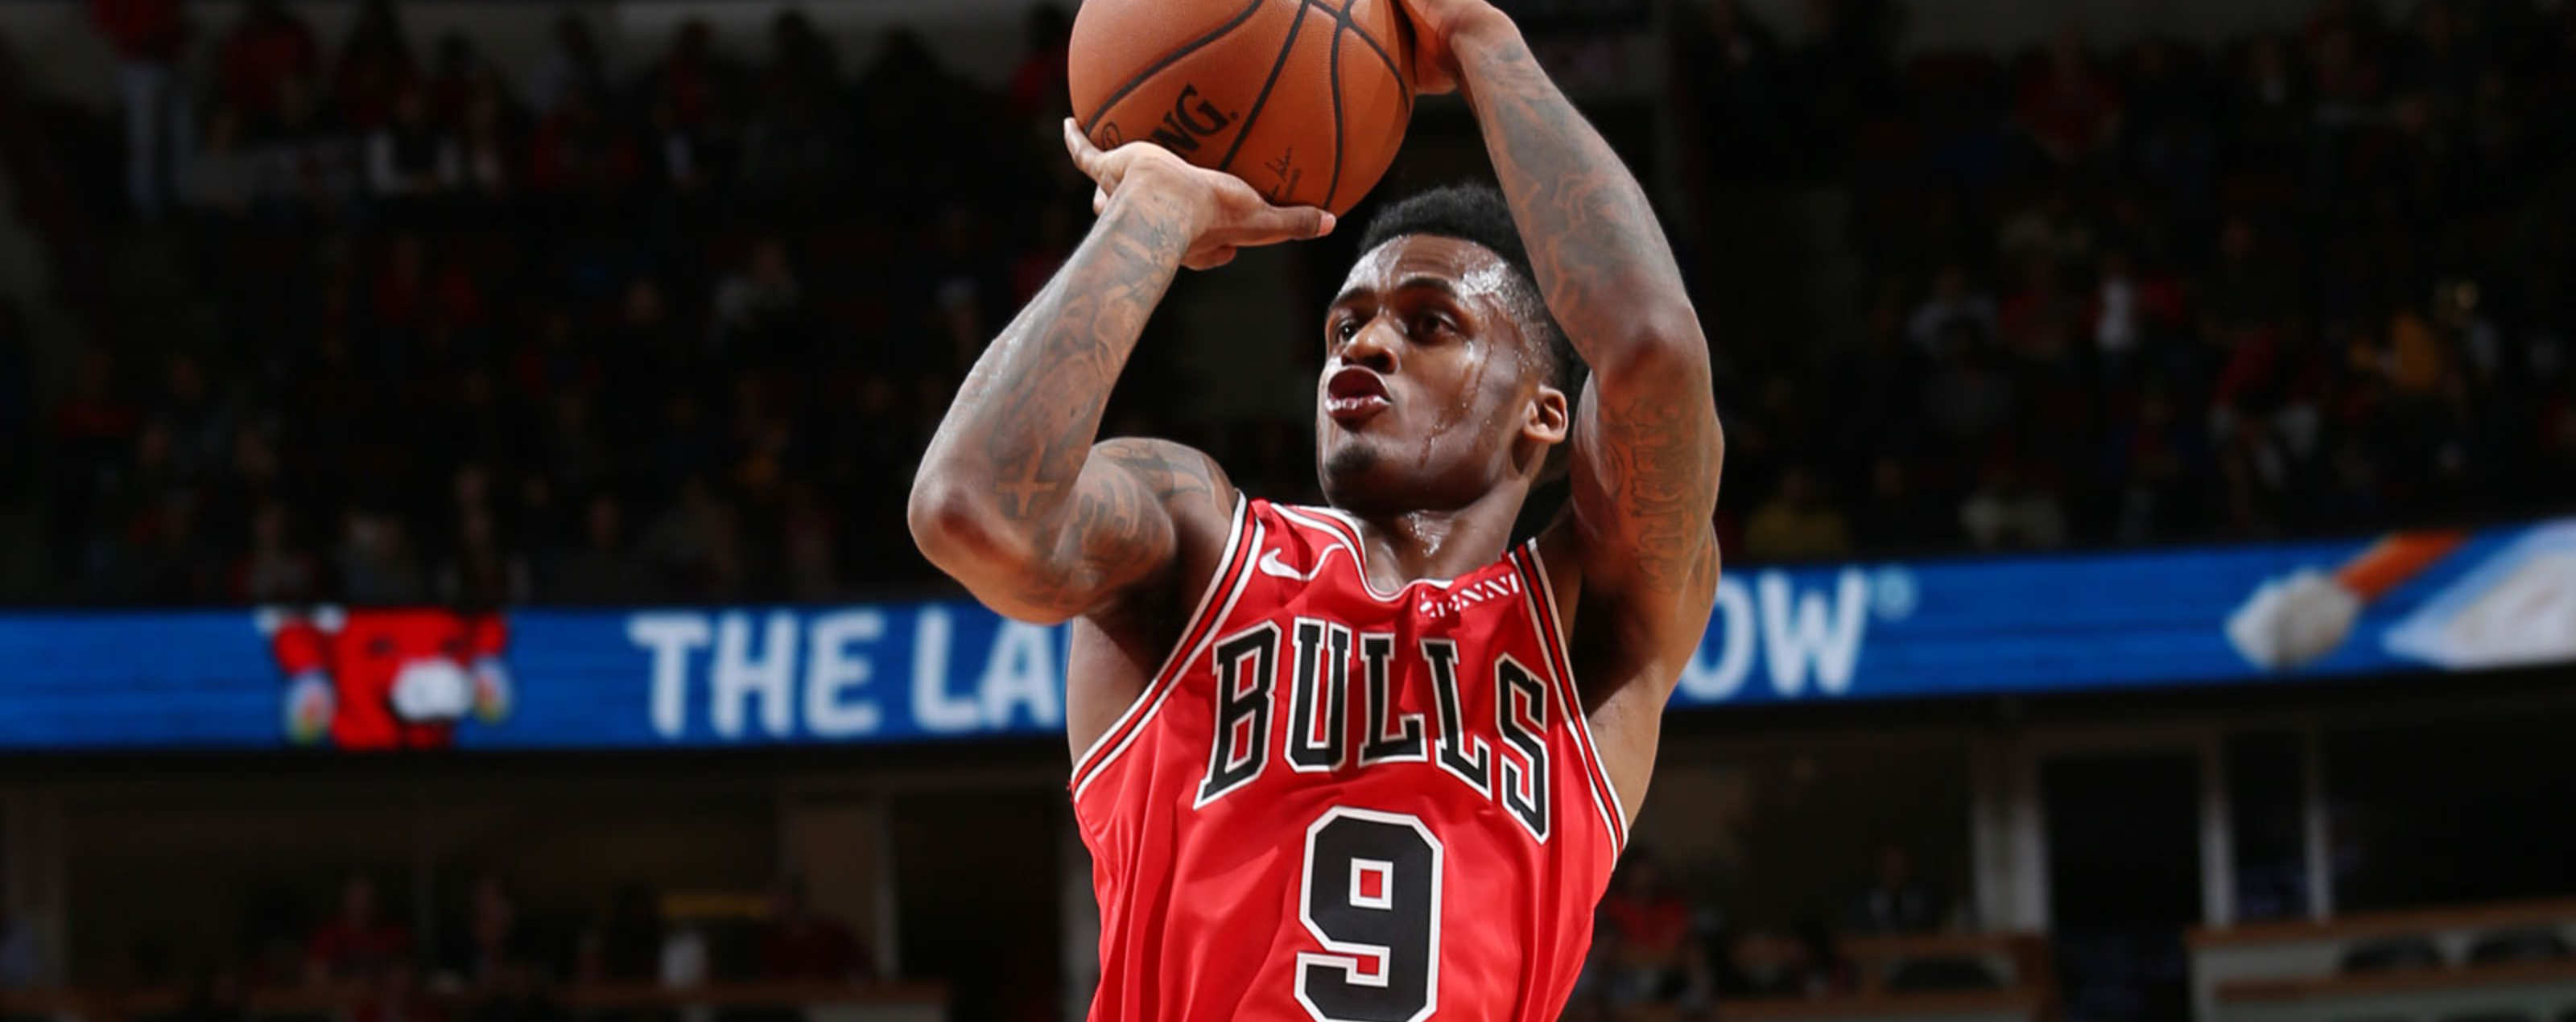 Antonio Blakeney #9 of the Chicago Bulls shoots the ball against the Toronto Raptors on November 17, 2018 at the United Center in Chicago, Illinois.